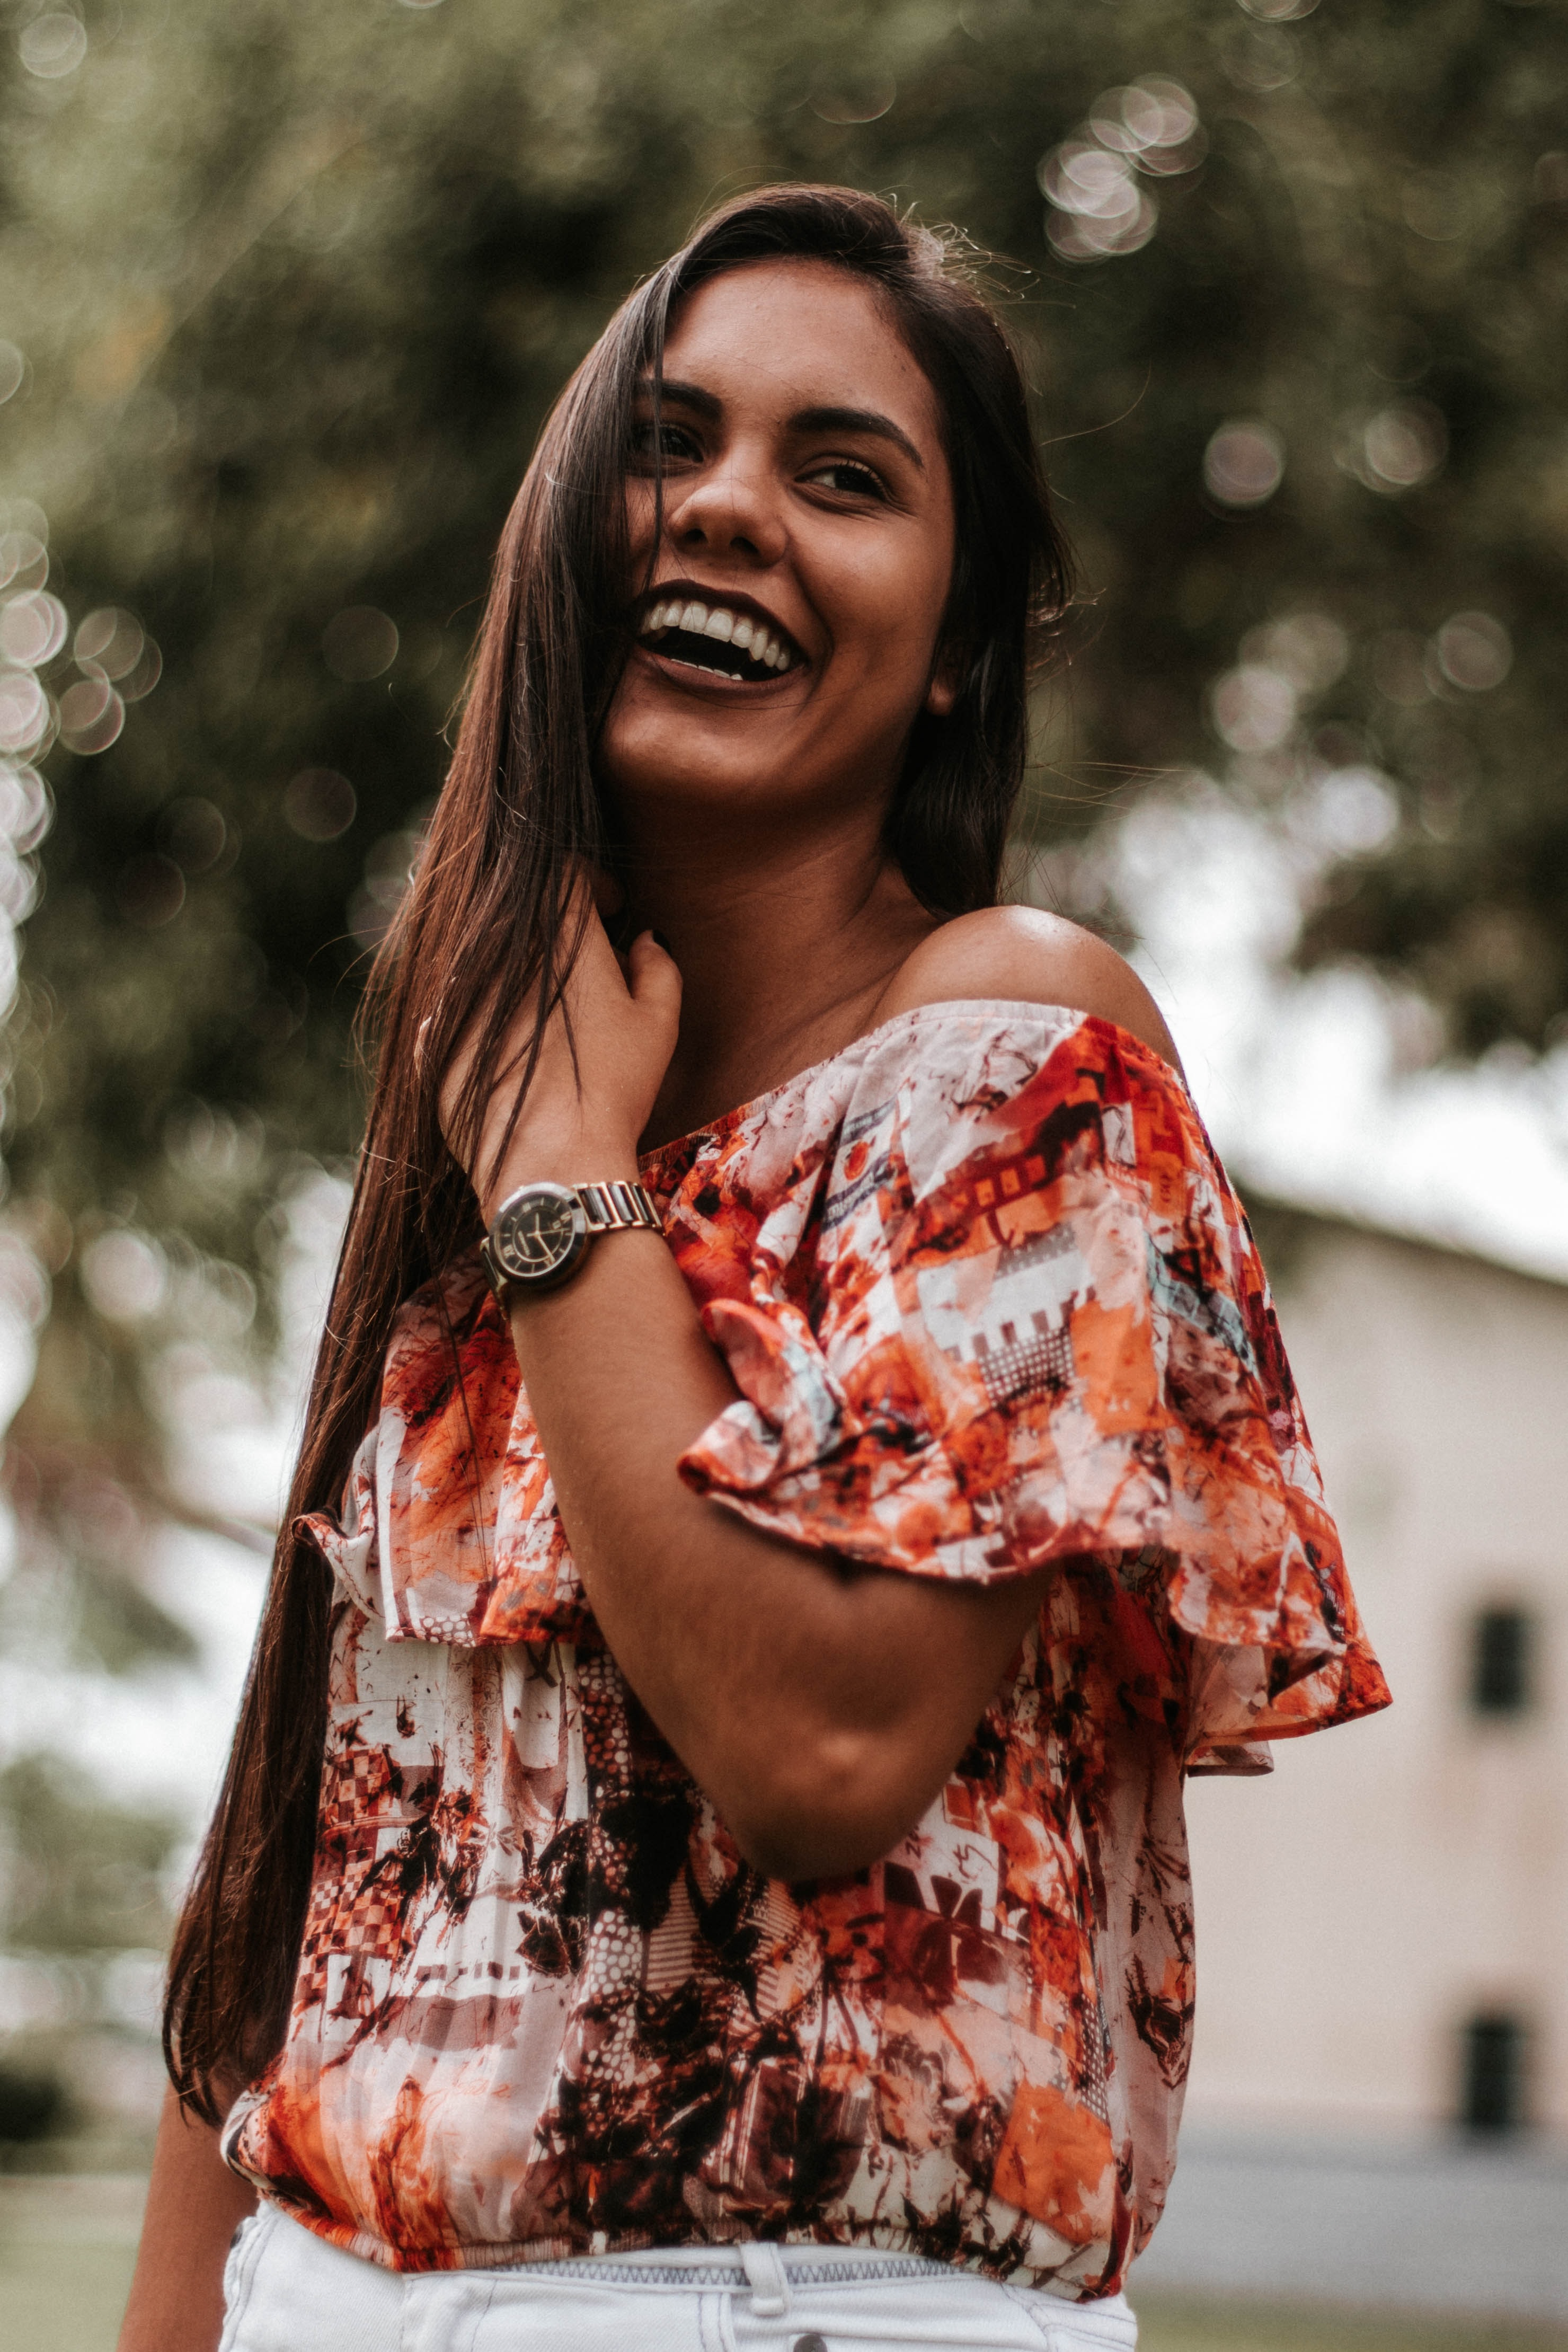 selective focus photograph of smiling woman